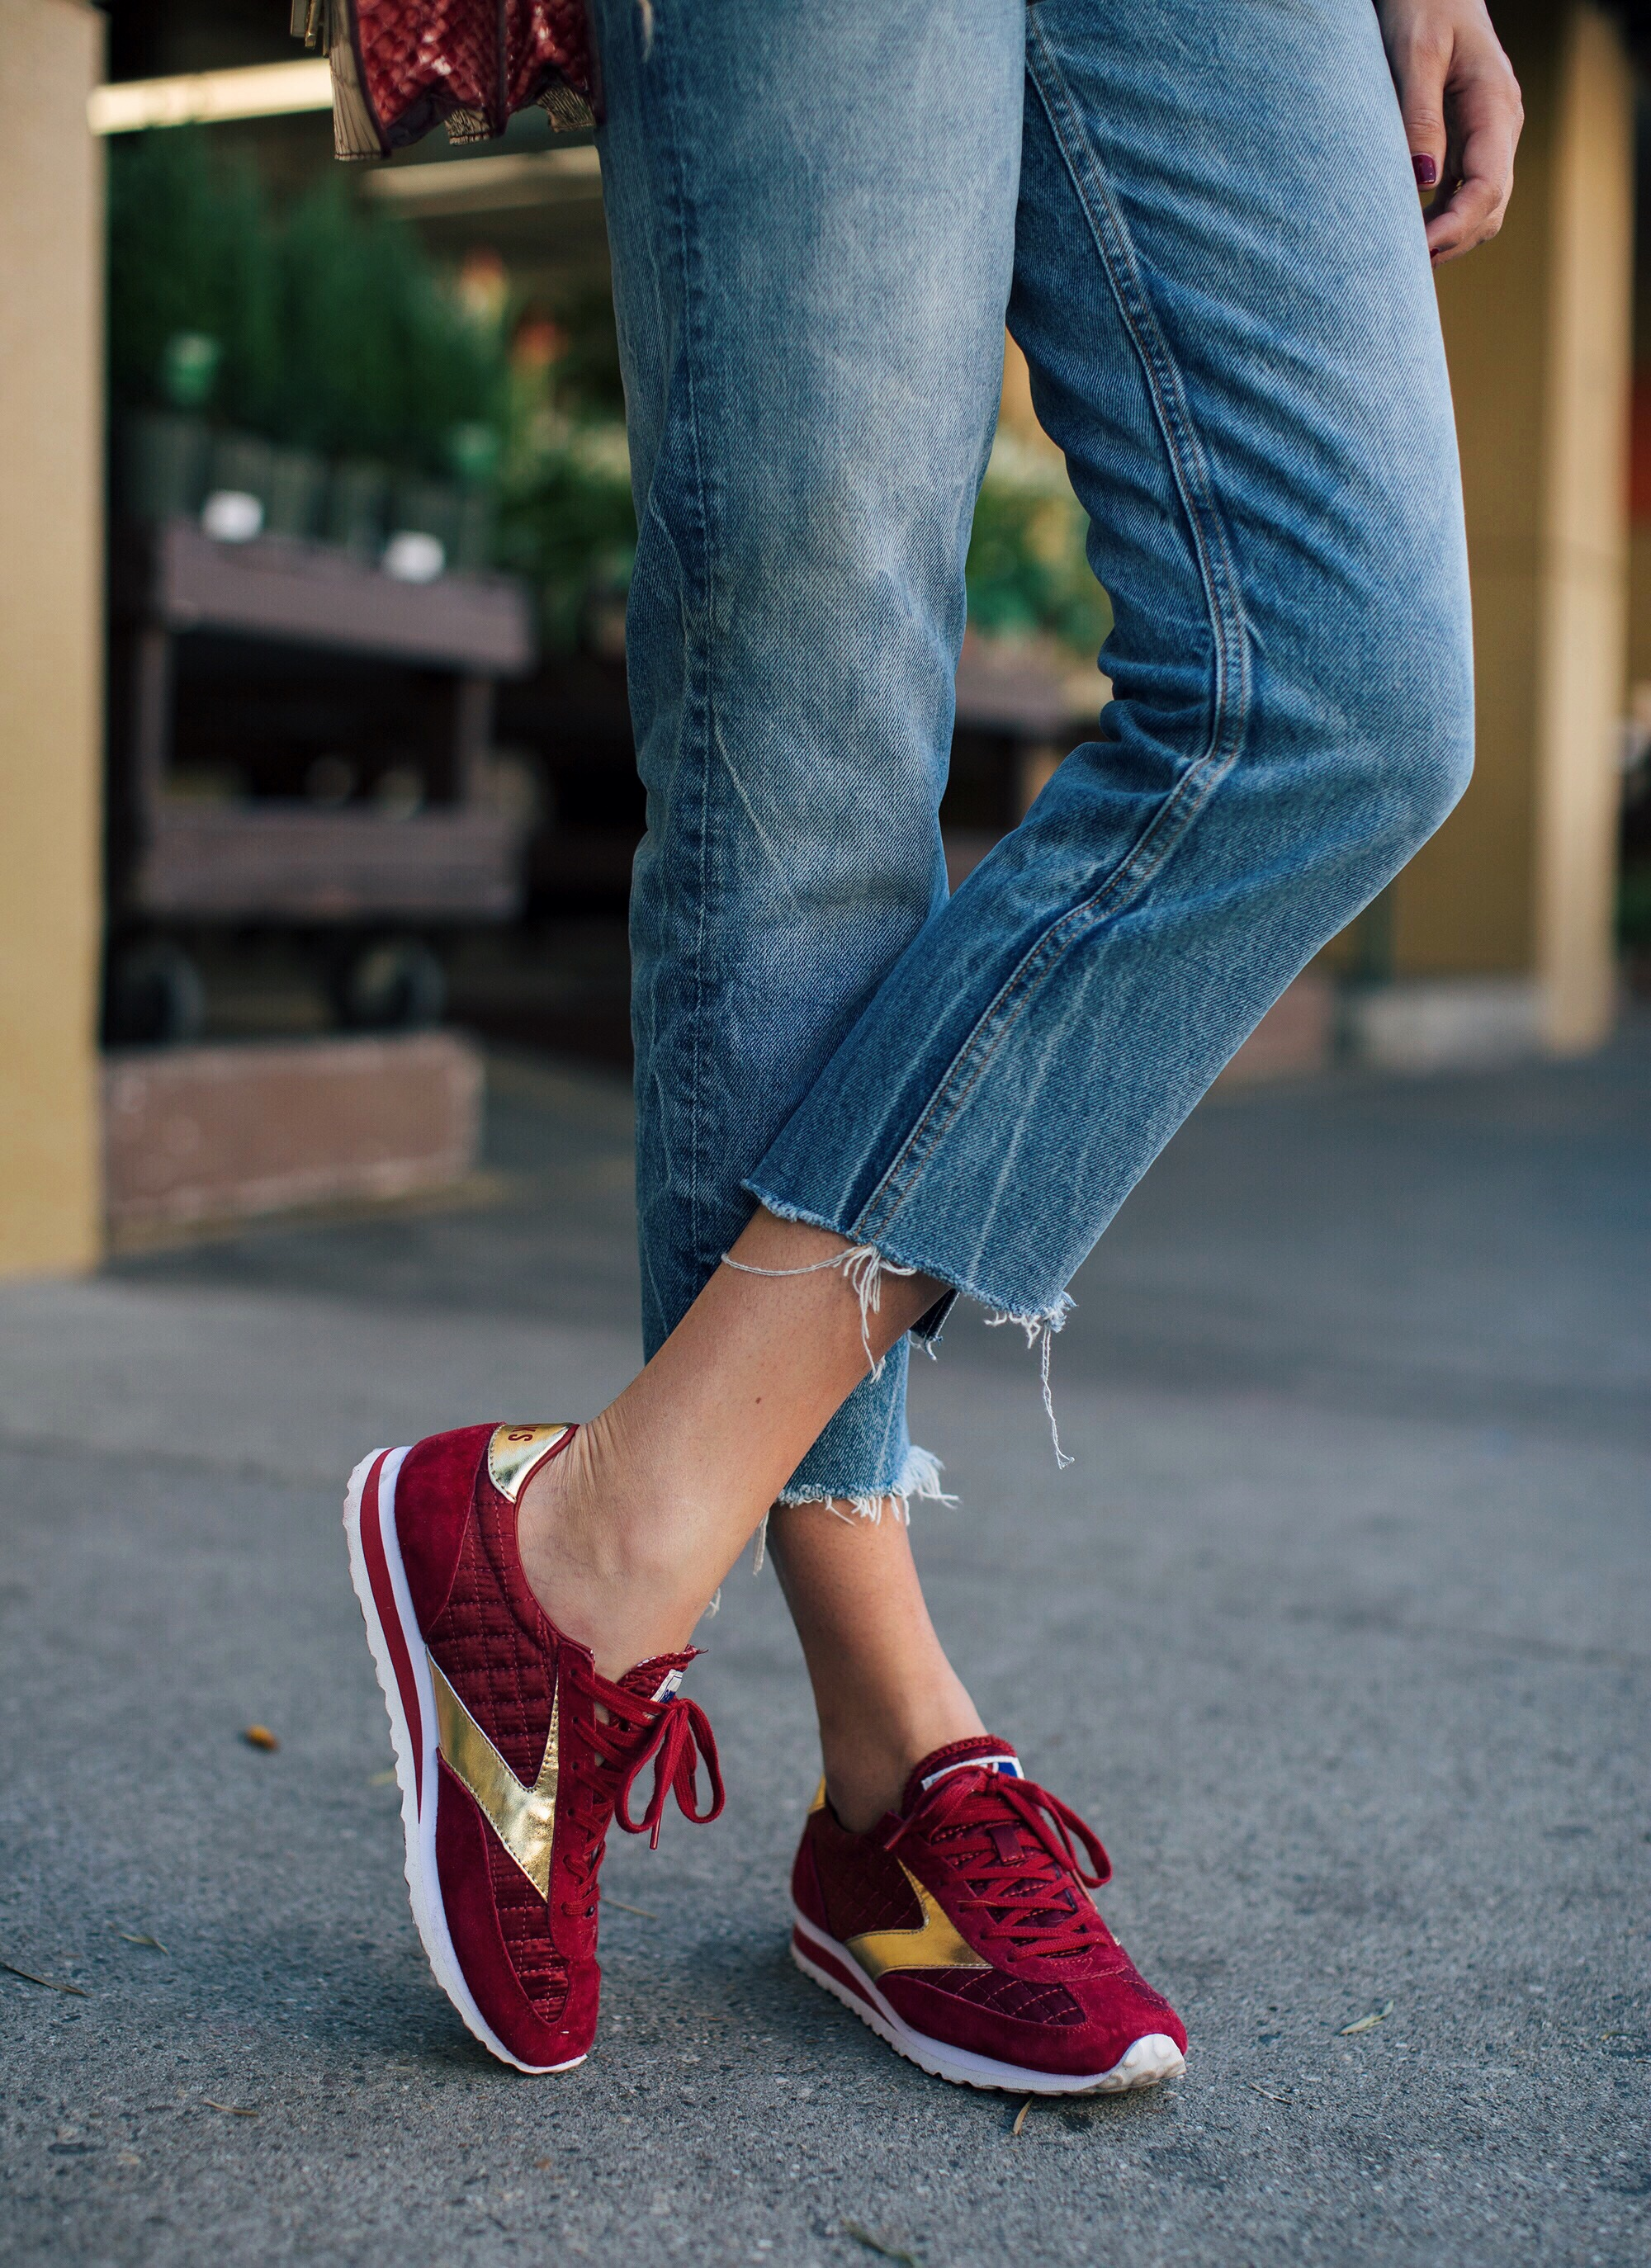 Red and Gold Brooks Sneakers